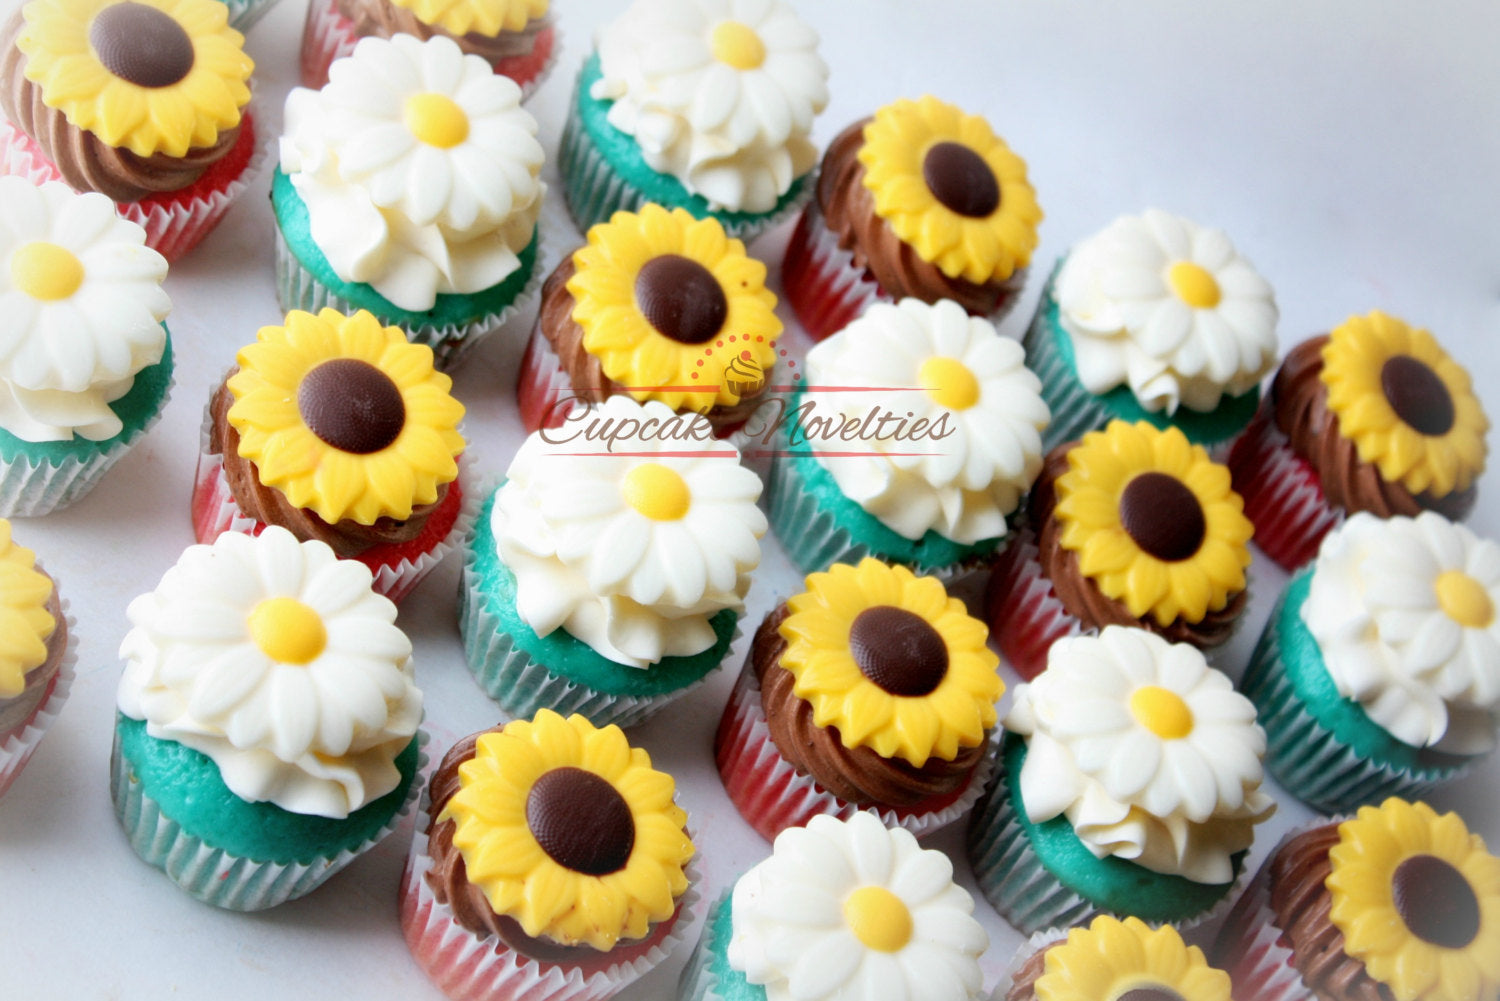 Terrific Cowgirl Birthday Party Spring Cupcakes Rustic Sunflower Cupcakes Personalised Birthday Cards Sponlily Jamesorg